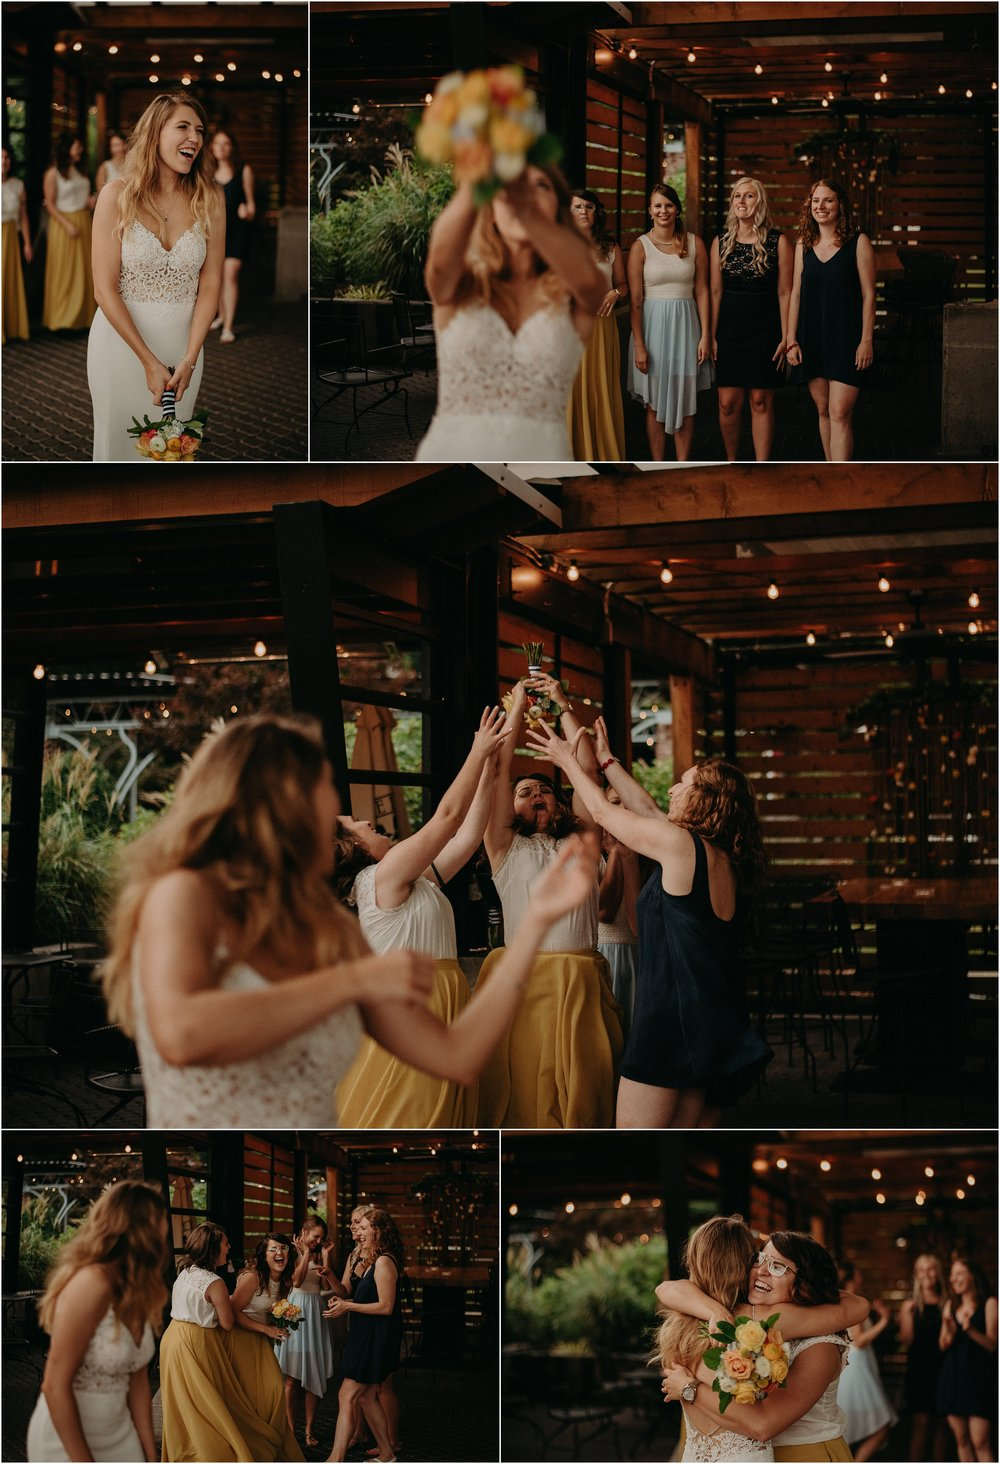 The bride throws her bouquet at the Flying Squirrel Bar wedding reception